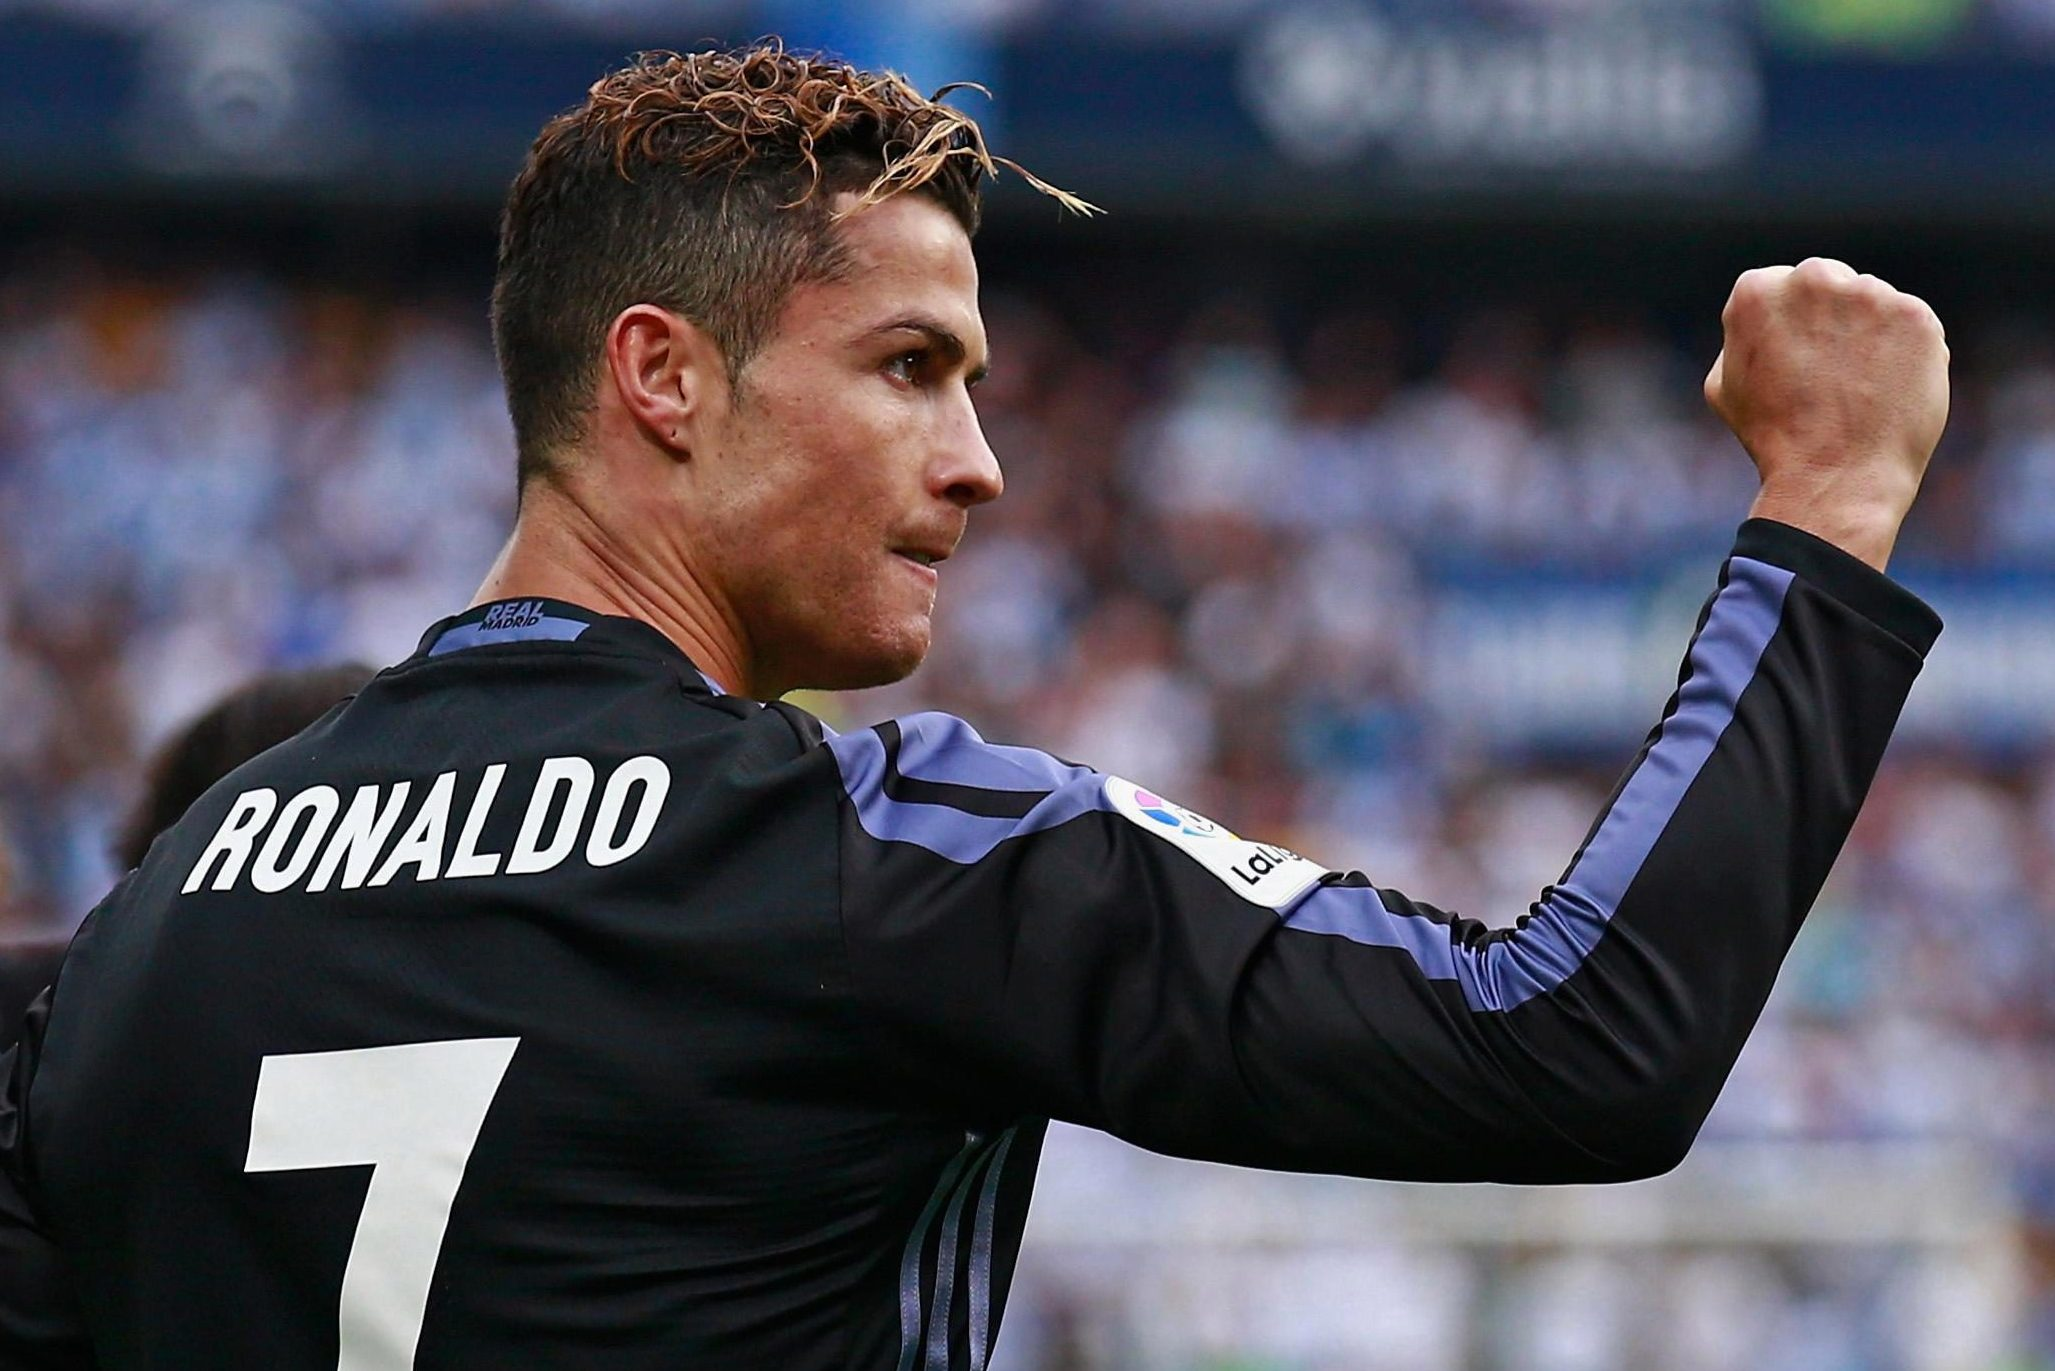 Cristiano Ronaldo insists he will never play as a striker ahead of